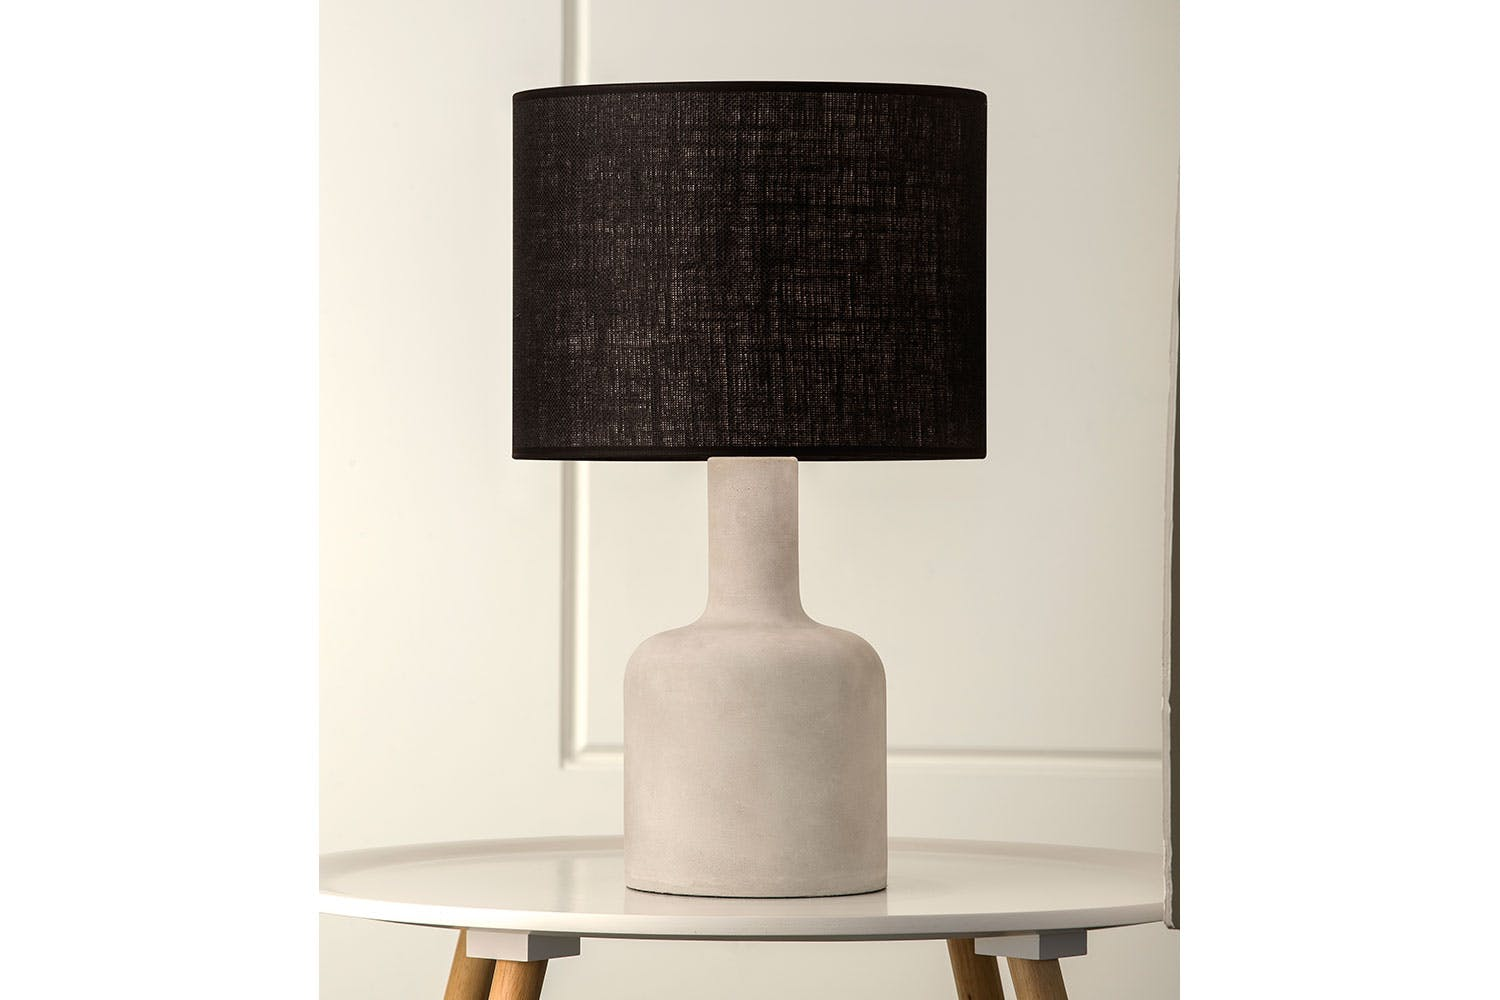 Tomahawk cement table lamp by mayfield harvey norman new for Lamp table harvey norman